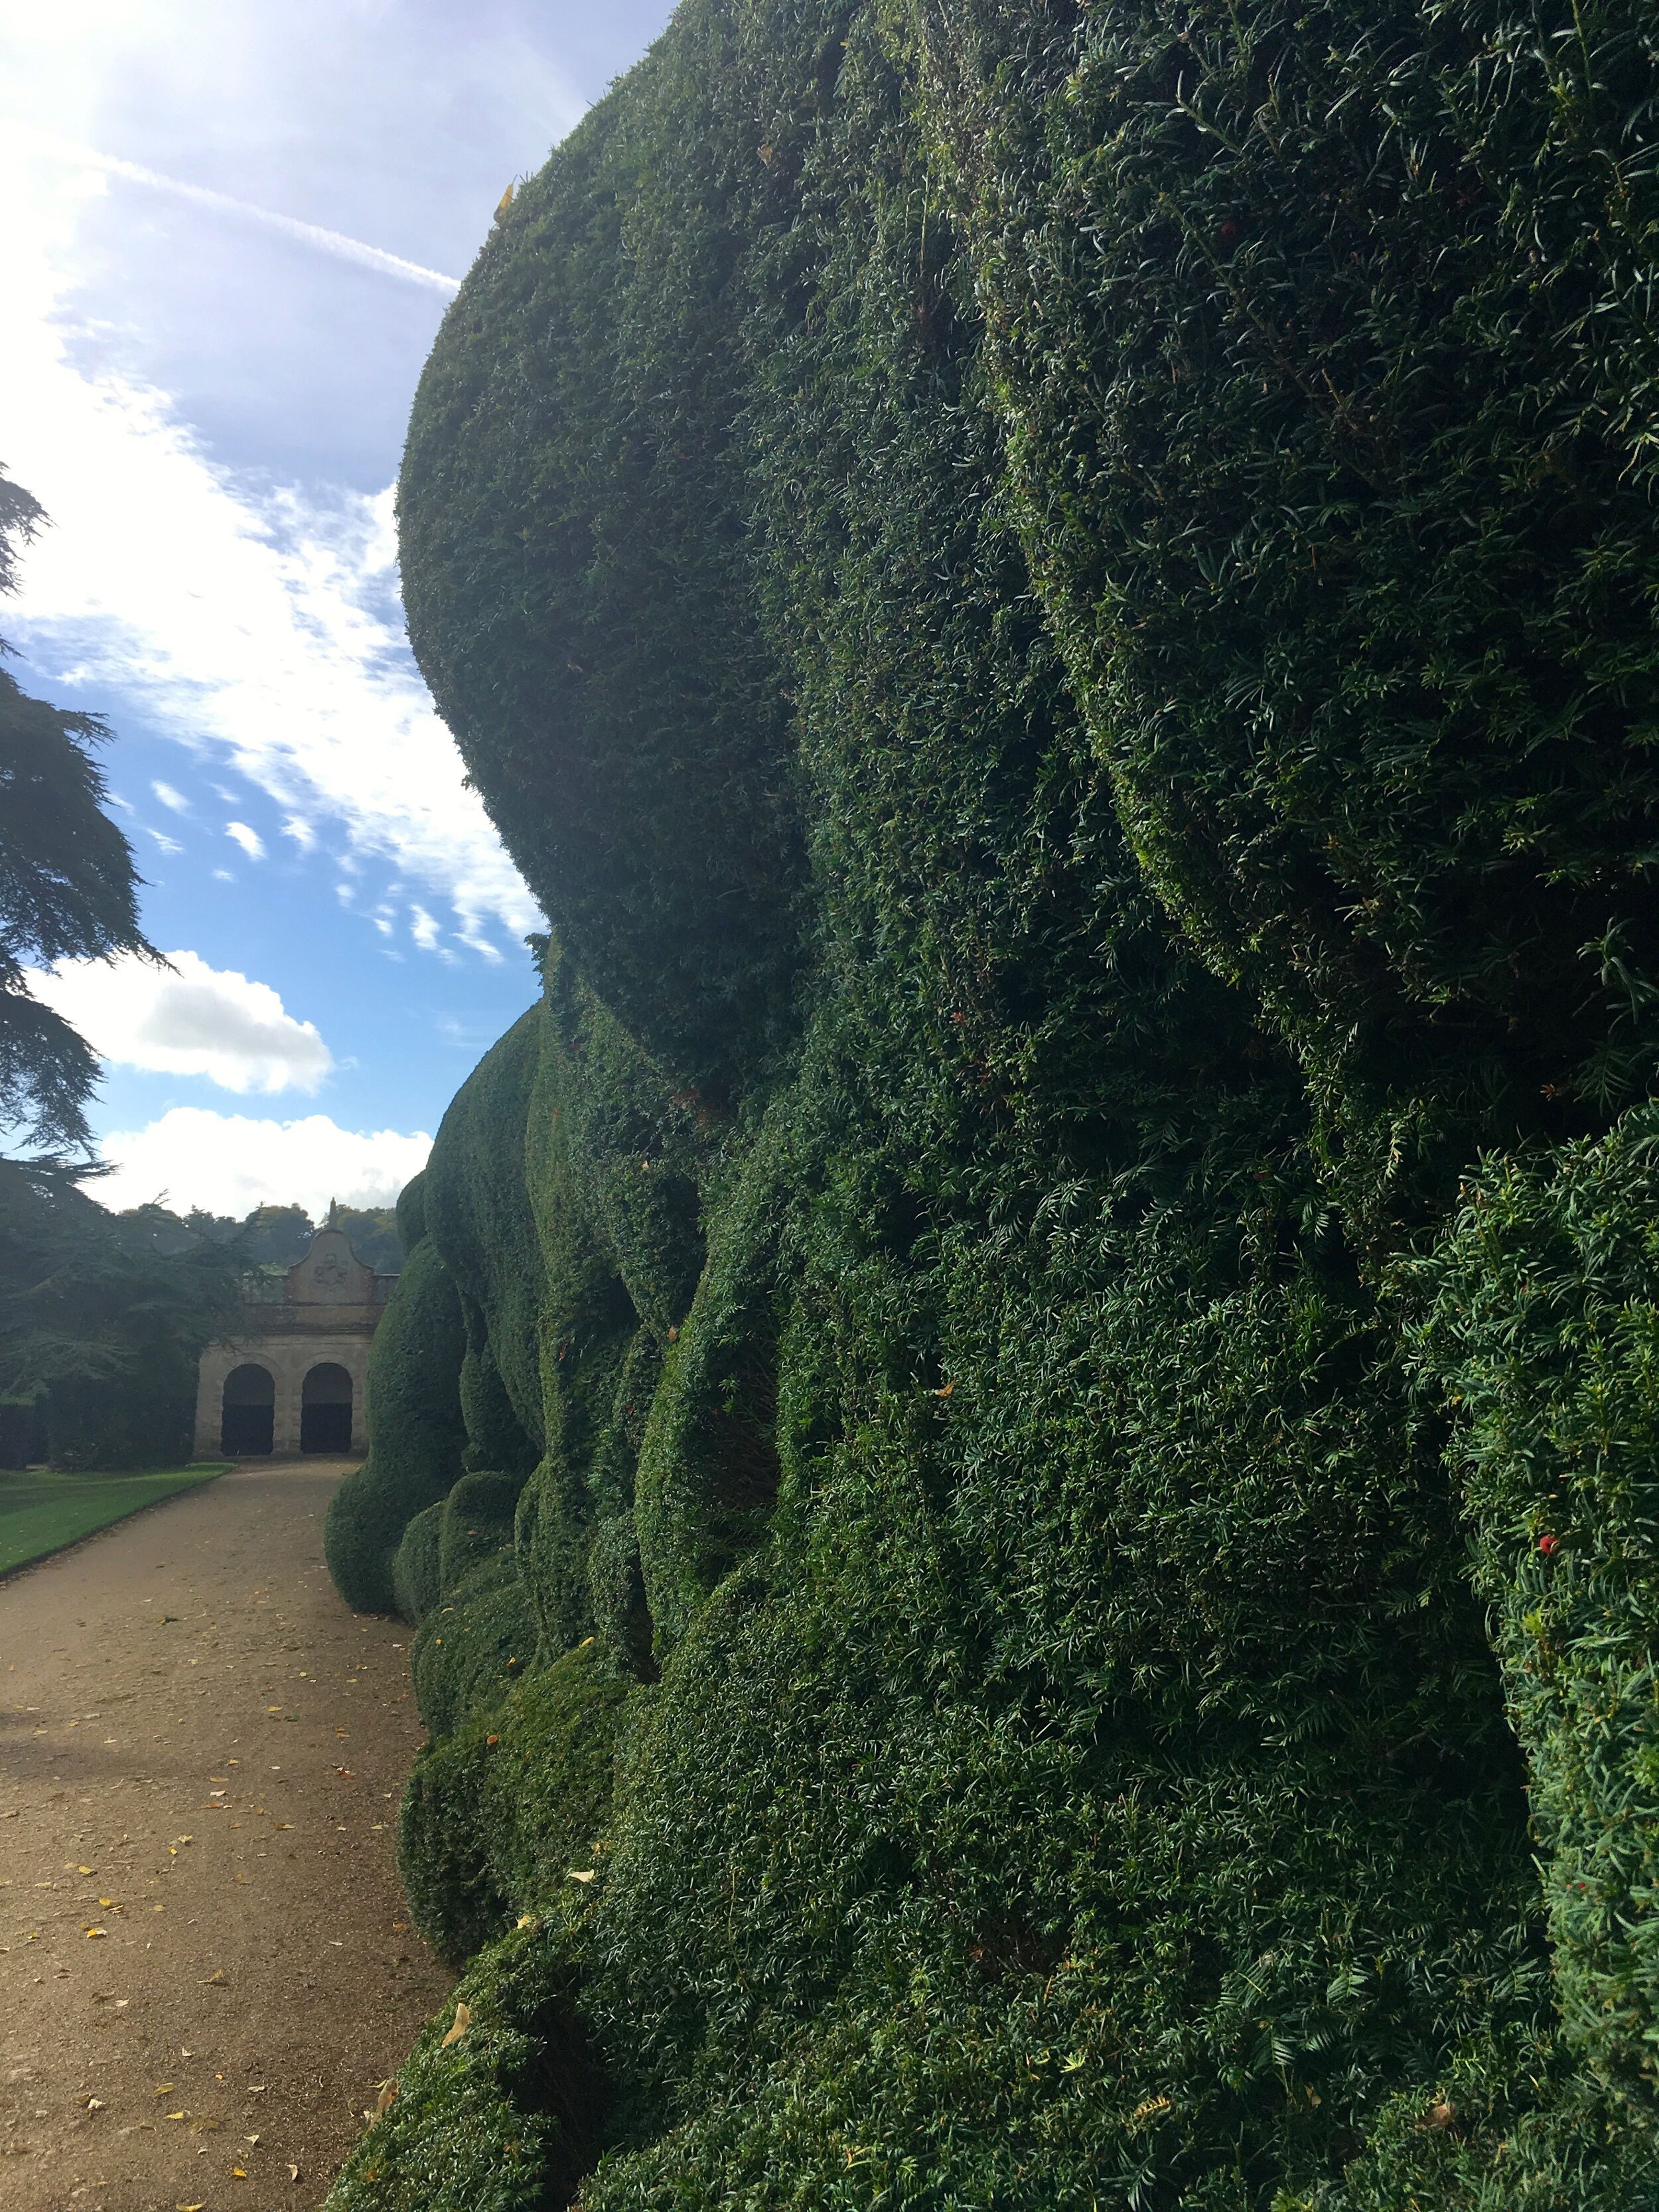 a bubble or a cloud - what do you think this hedge looks like